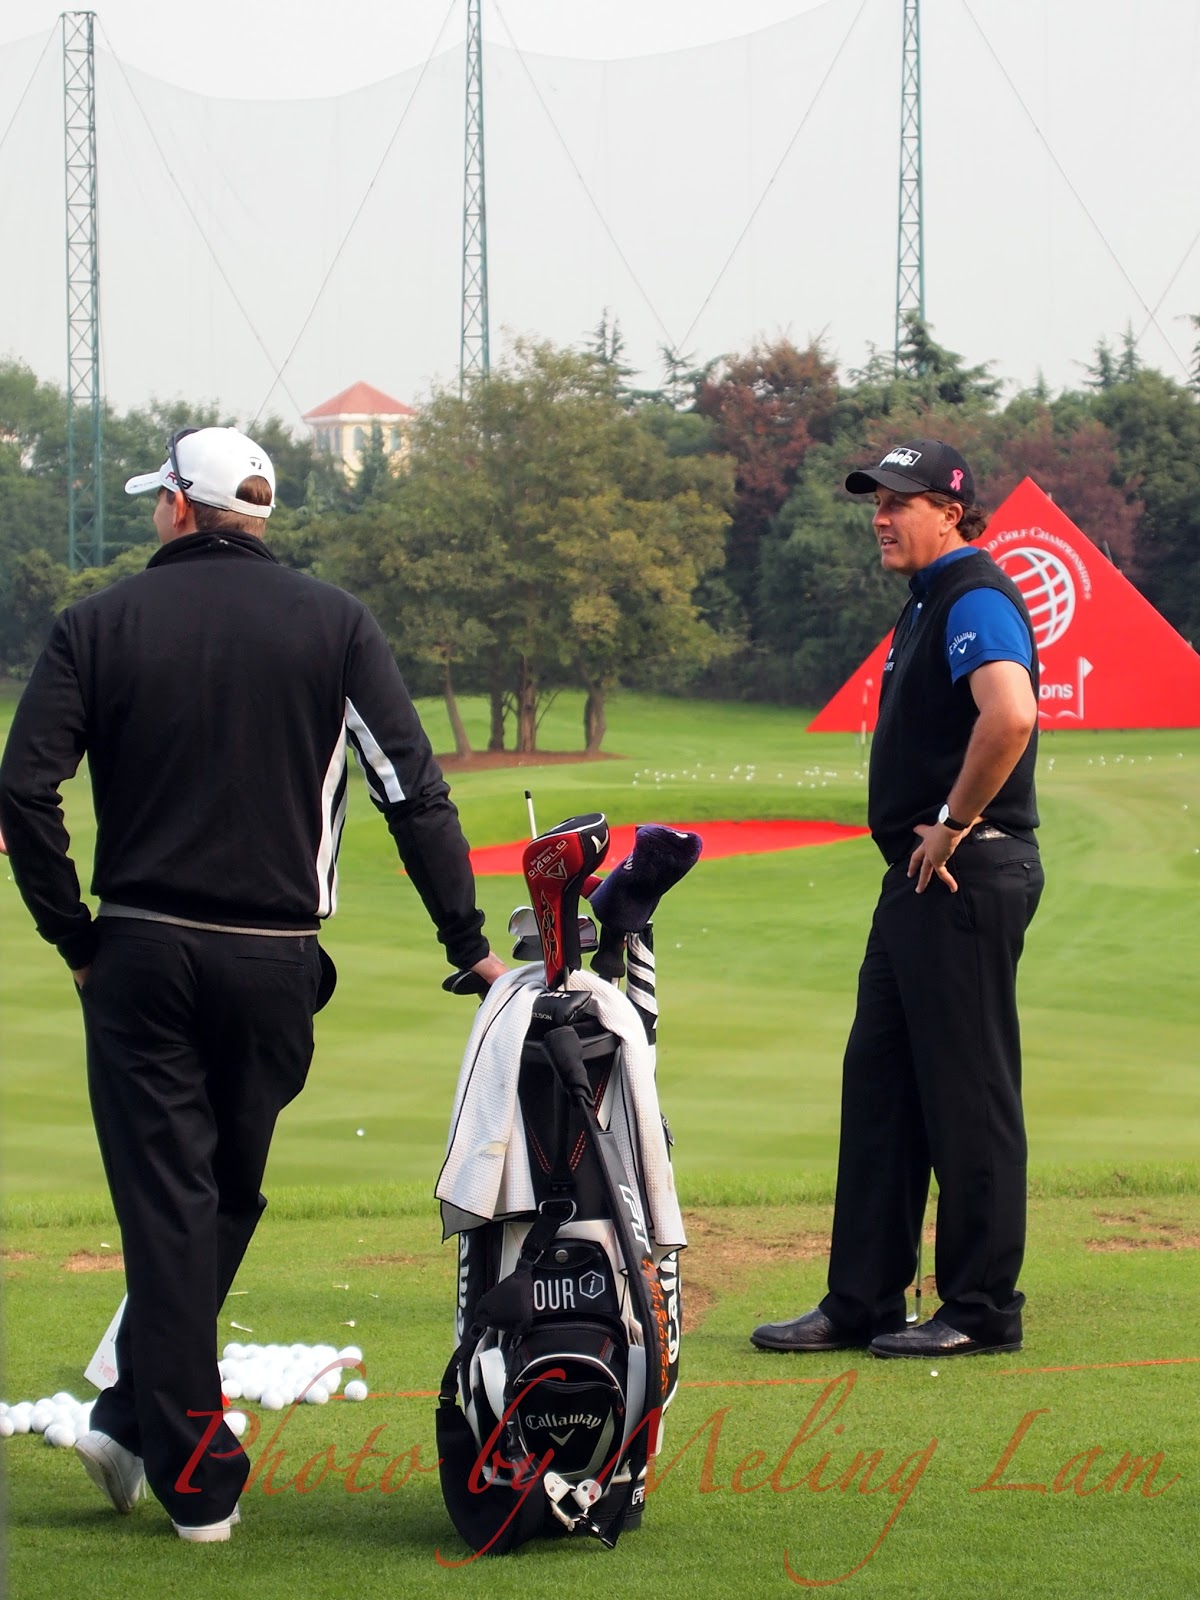 phil mickelson wgc-hsbc golf champions pro-am Competition shanghai sheshan